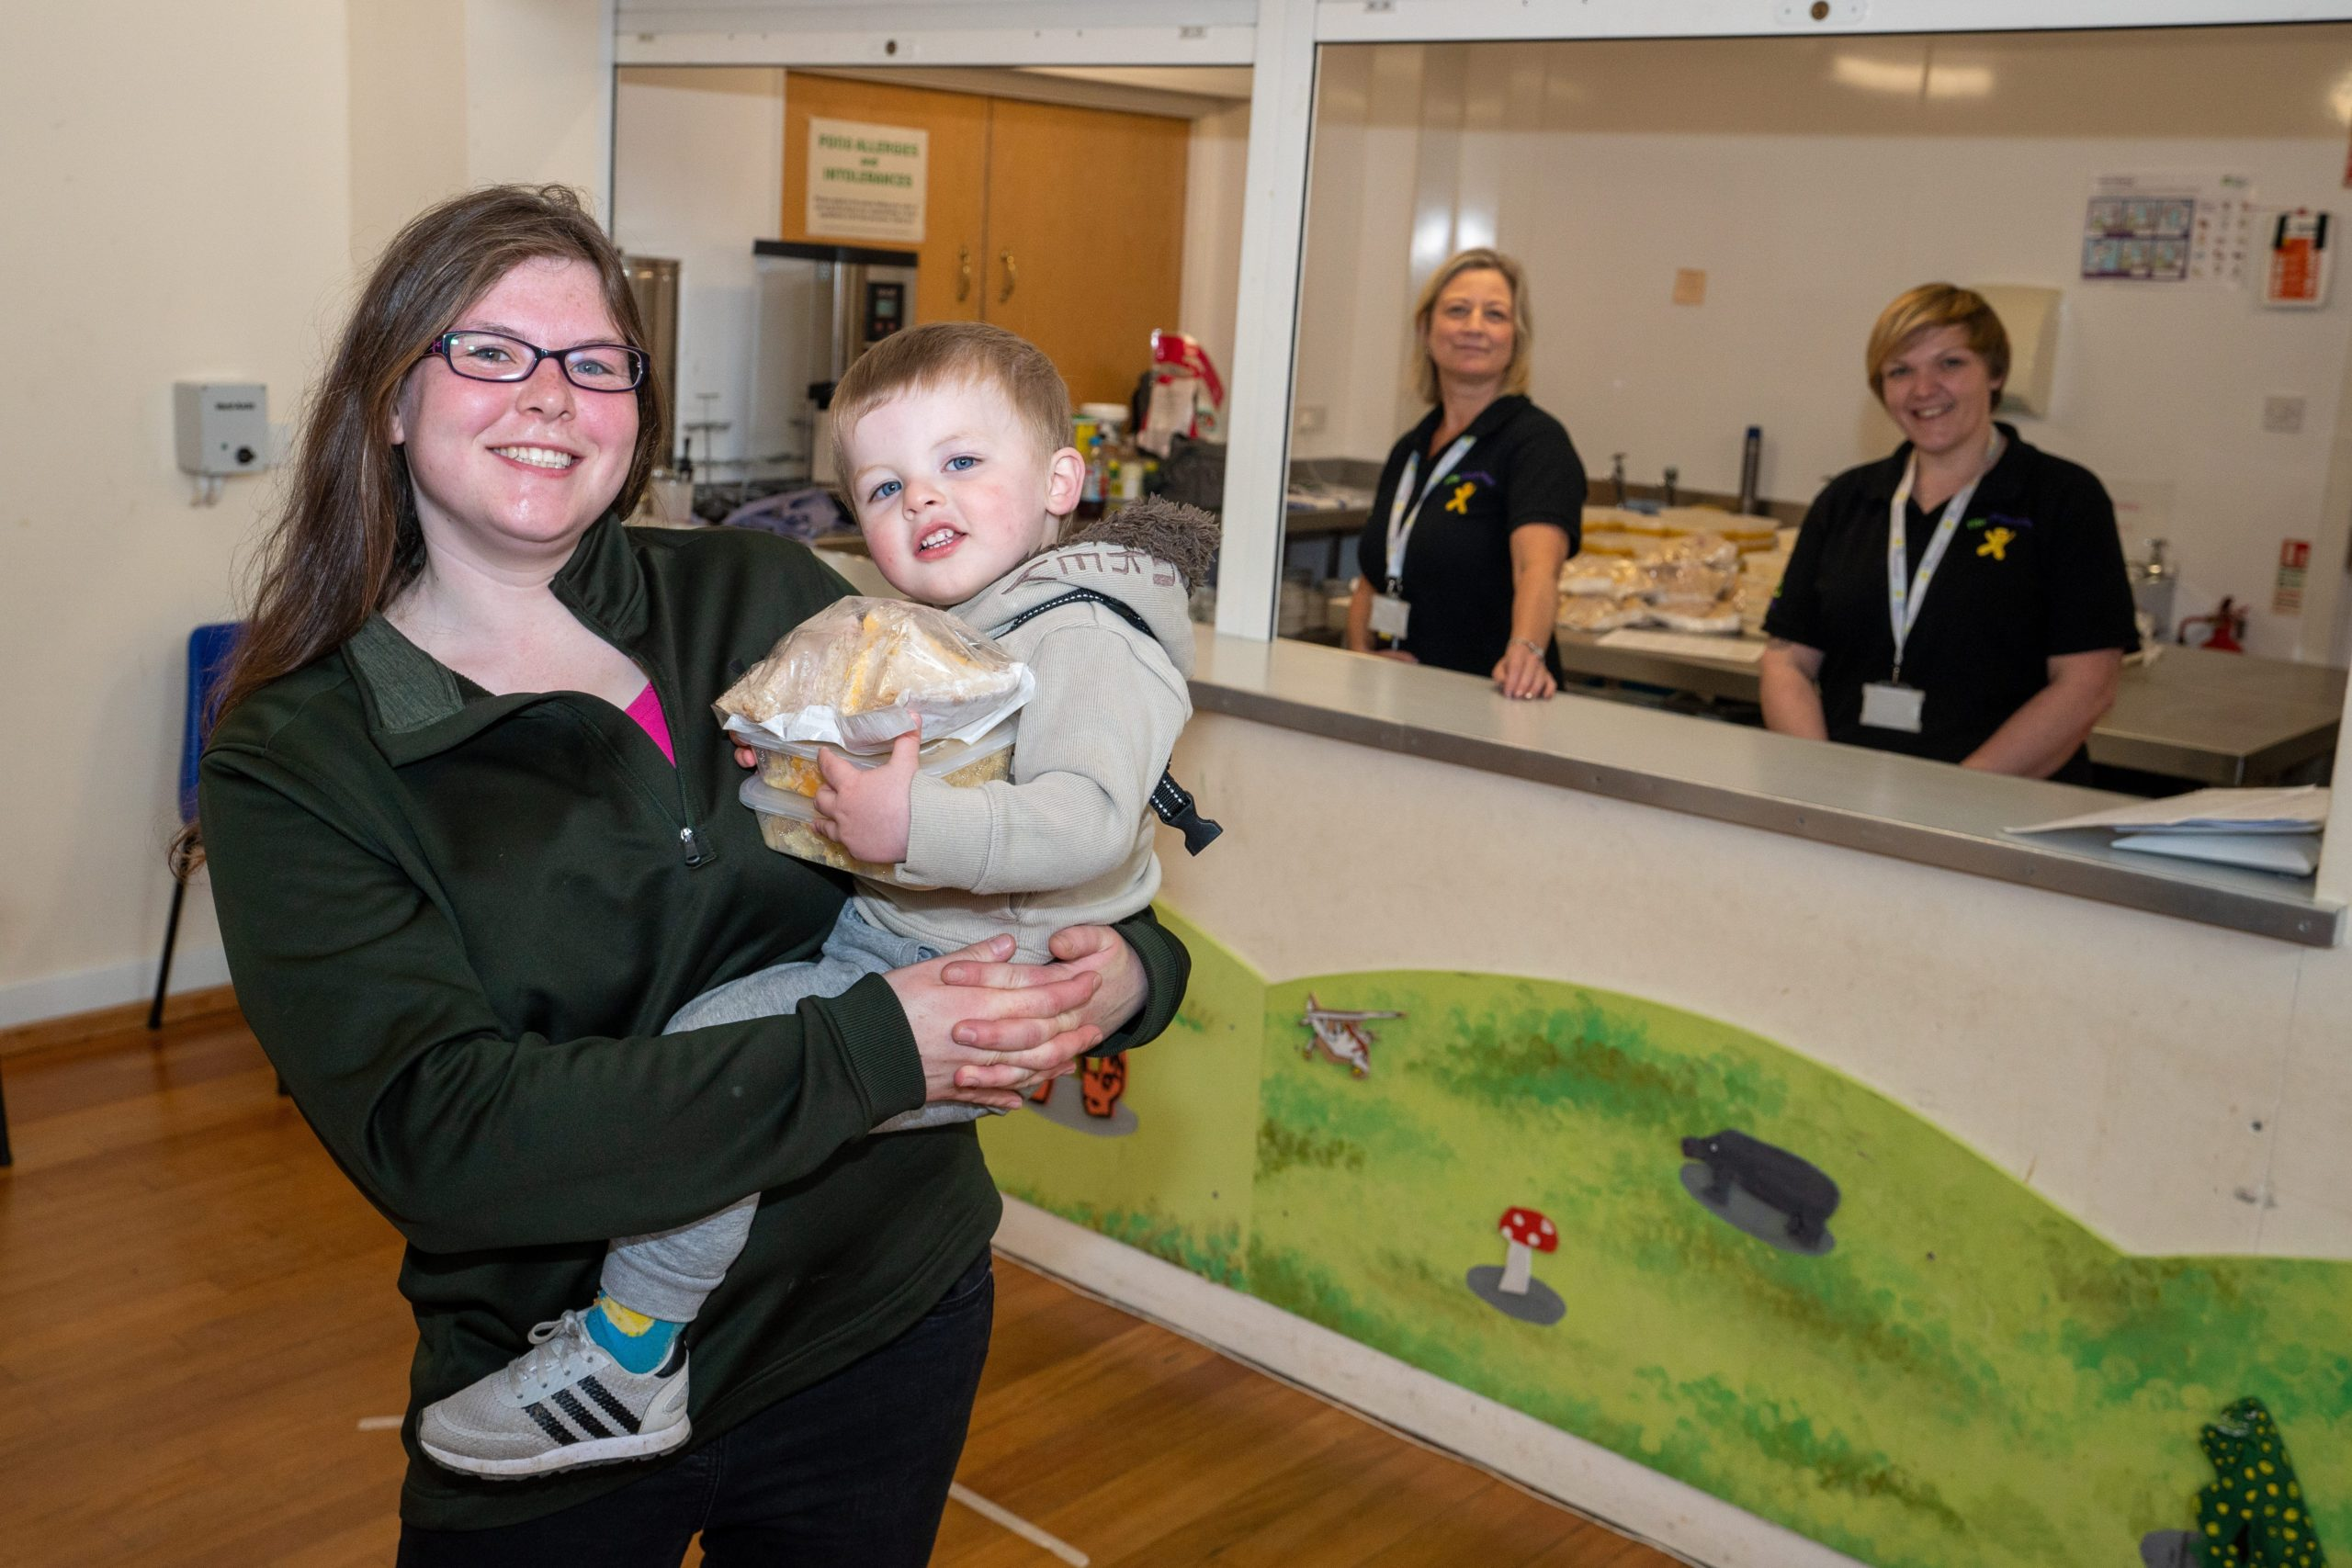 Jillian Cartmel, who is accompanied by her one-year-old son Lucas, collecting lunch from Zoe Taylor and Kerry Jones.